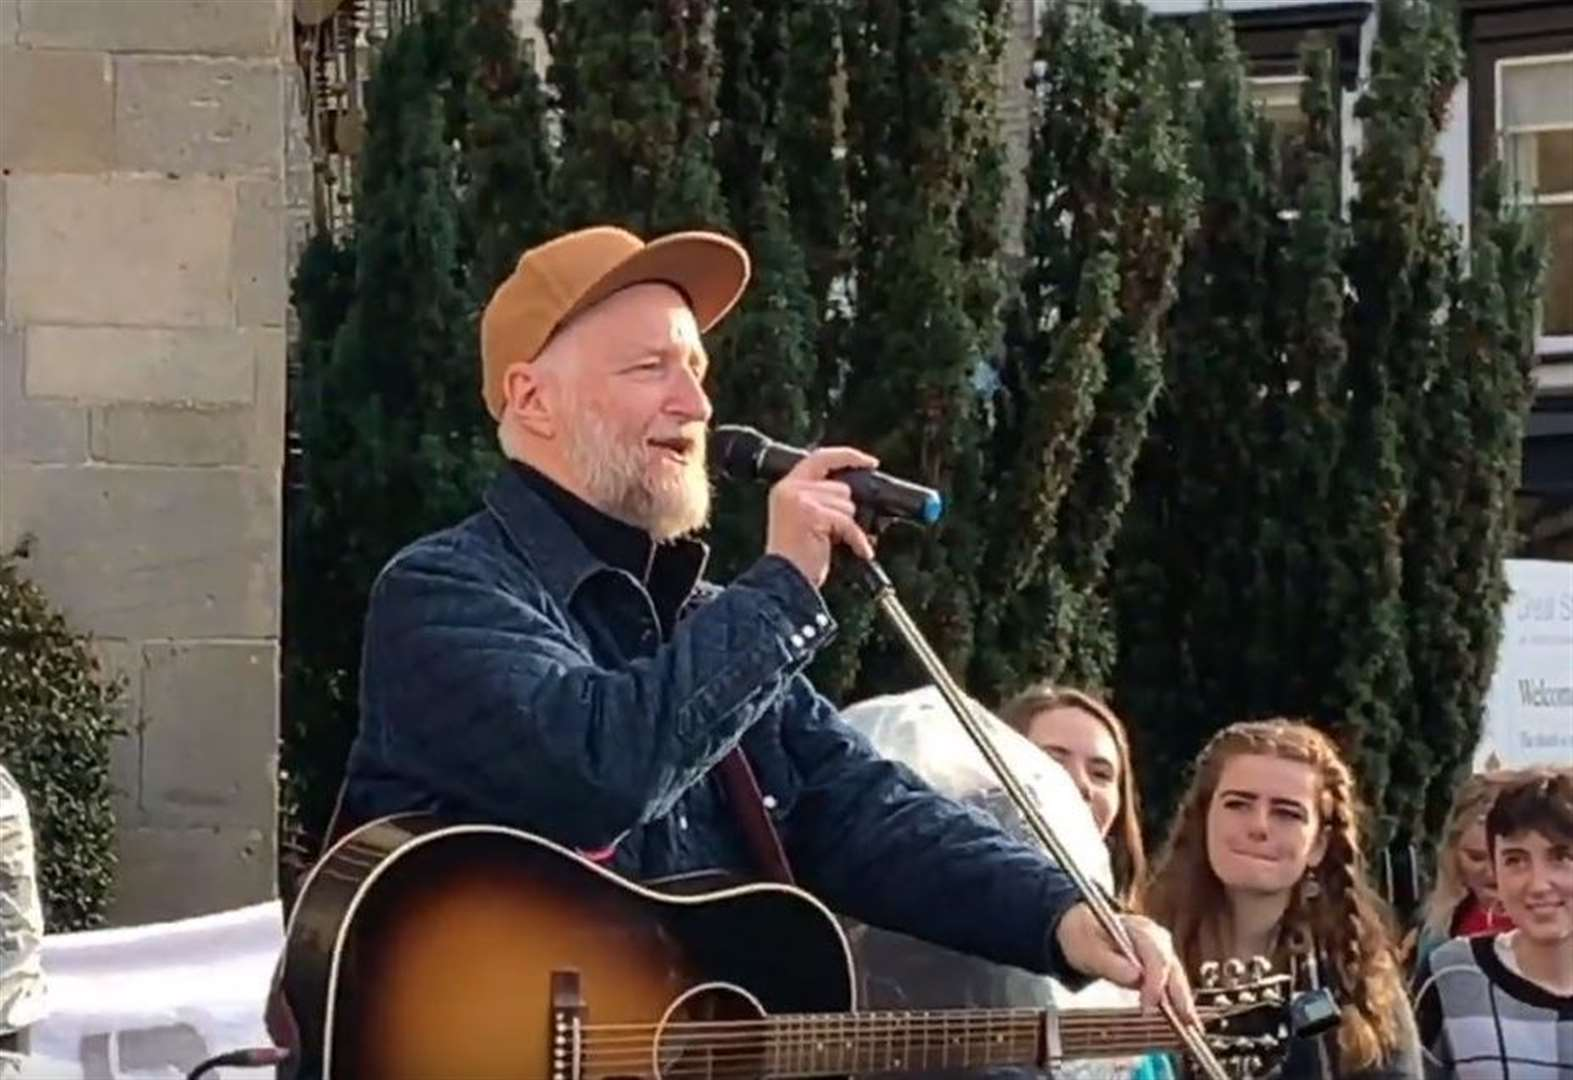 Billy Bragg joins union members on strike in Cambridge